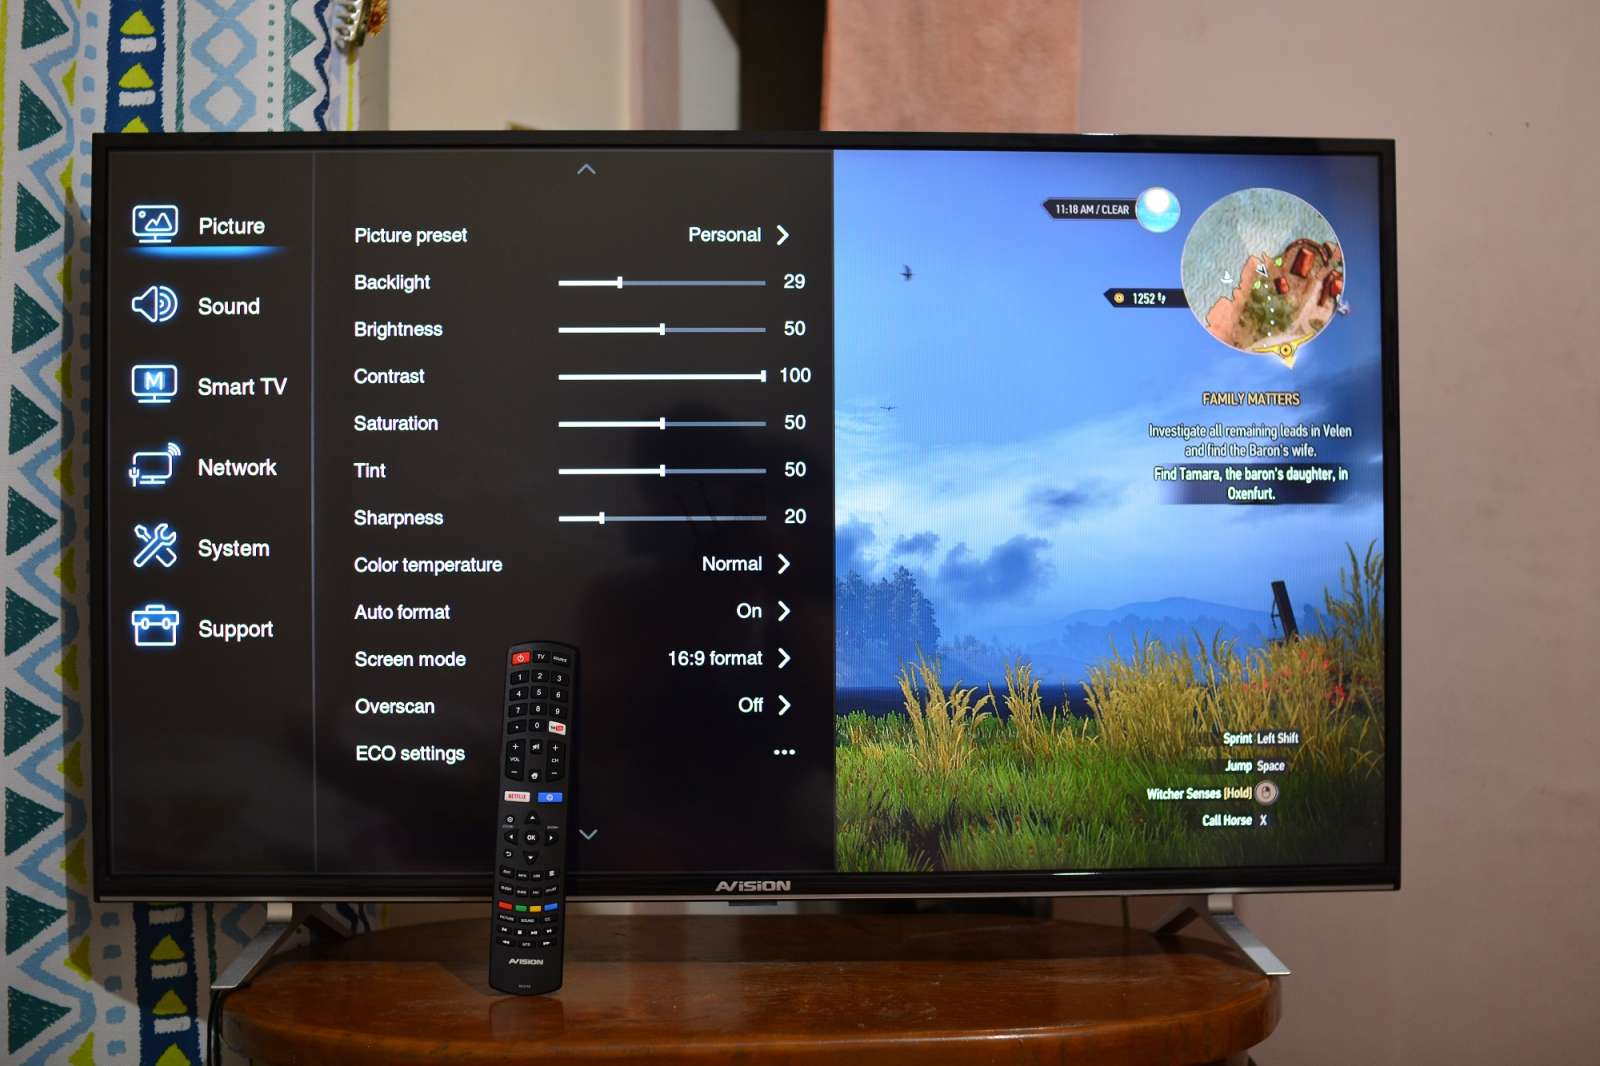 AVision 43FL801 Smart LED TV - display settings